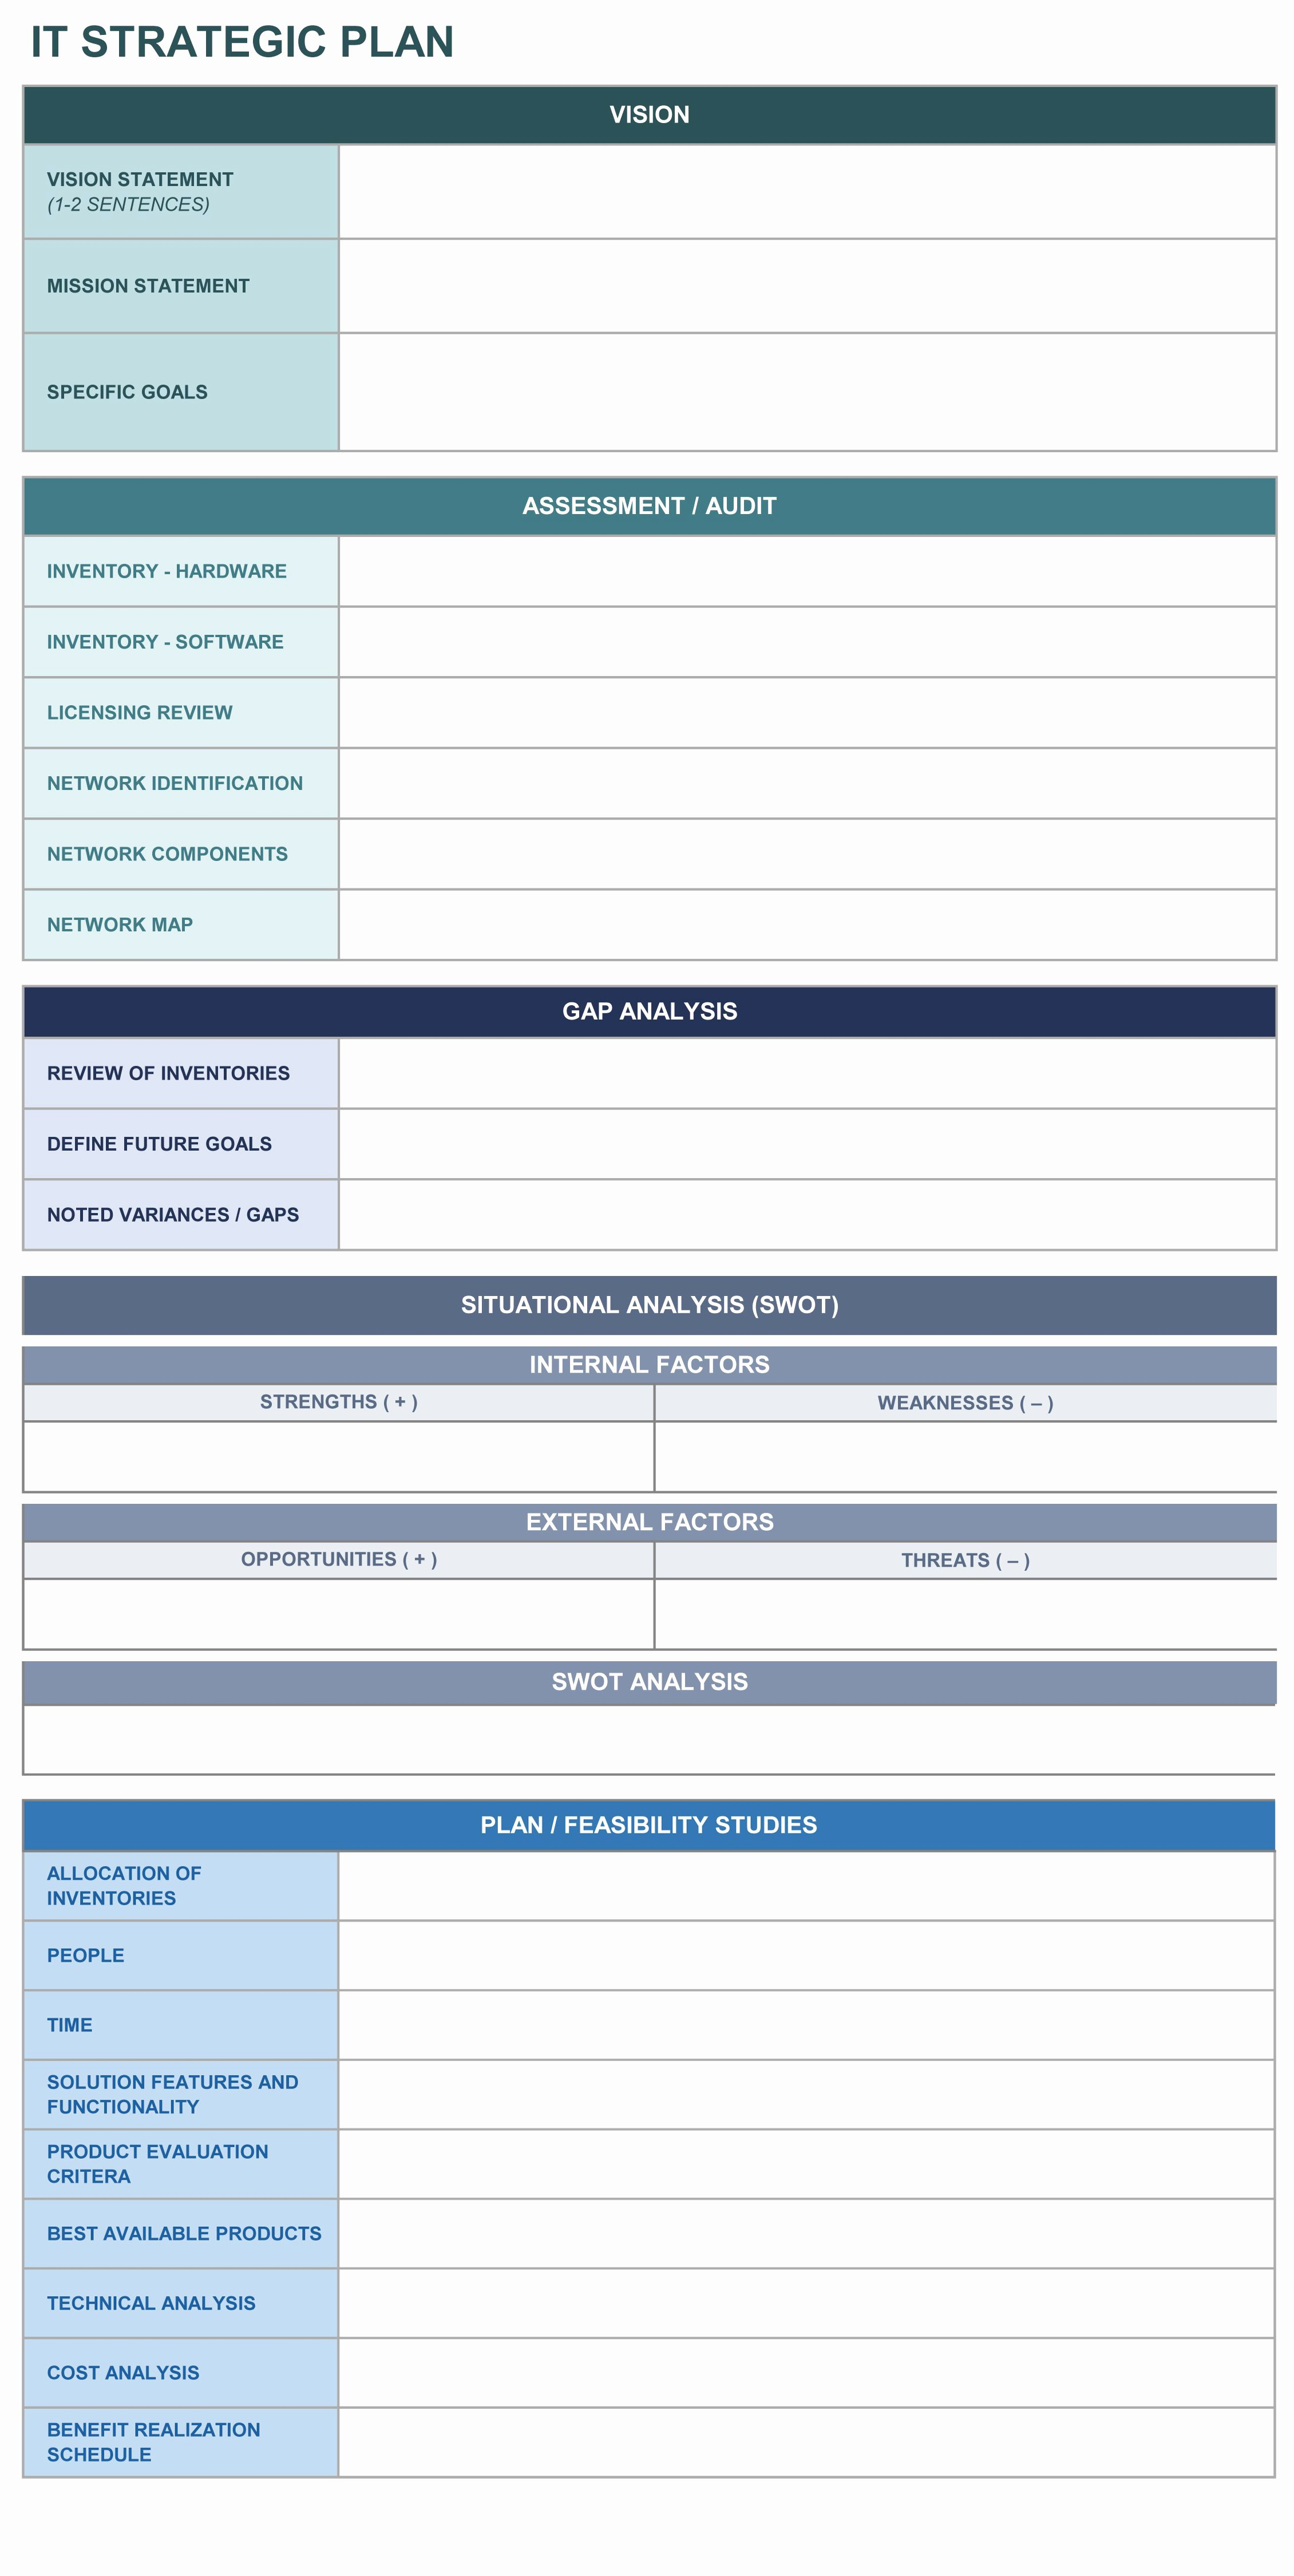 Strategic Plan Template Excel Lovely 9 Free Strategic Planning Templates Smartsheet